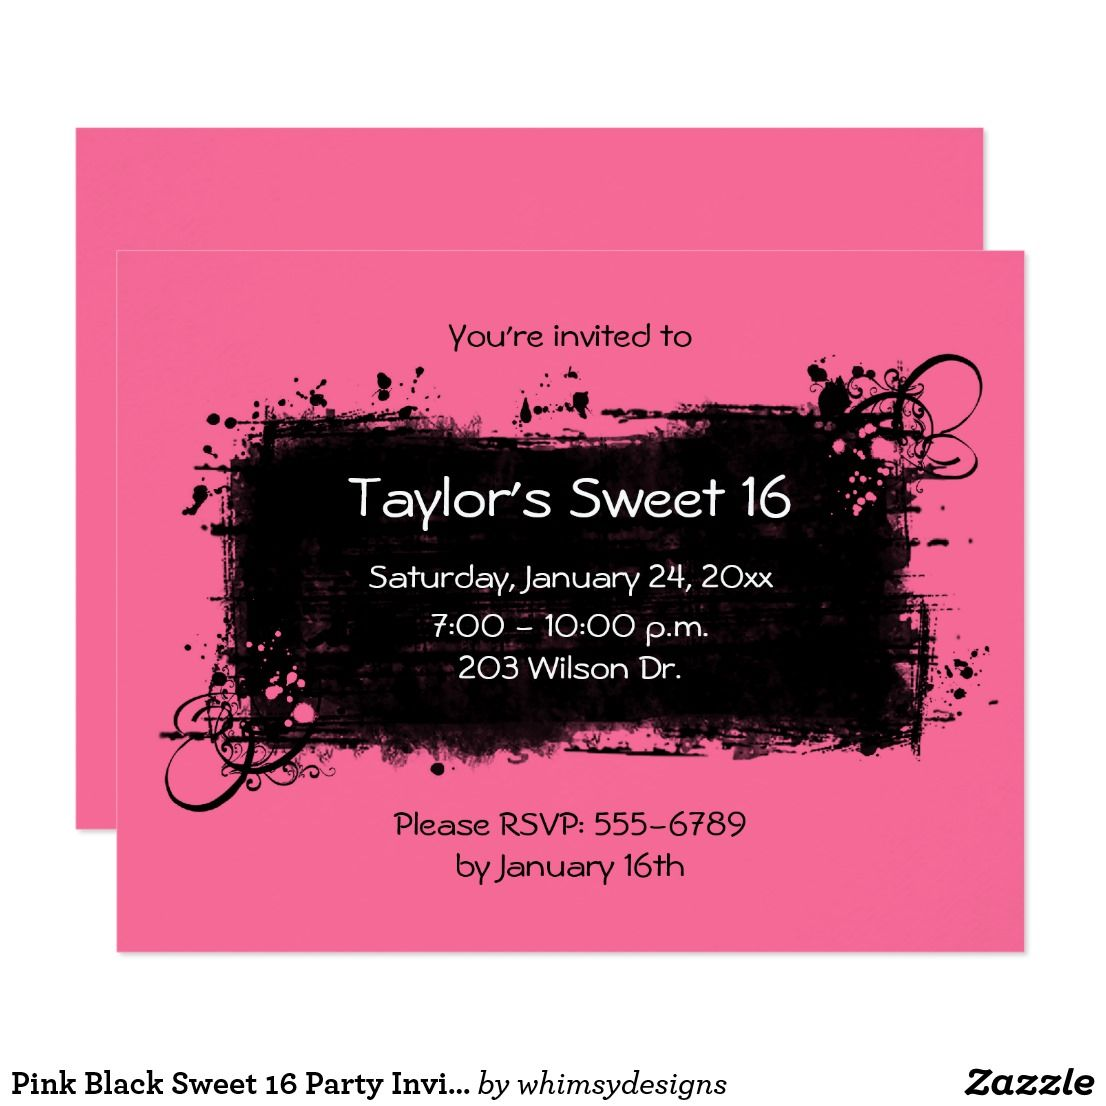 Pink Black Sweet 16 Party Invitations | Birthday sweets, Sweet 16 ...